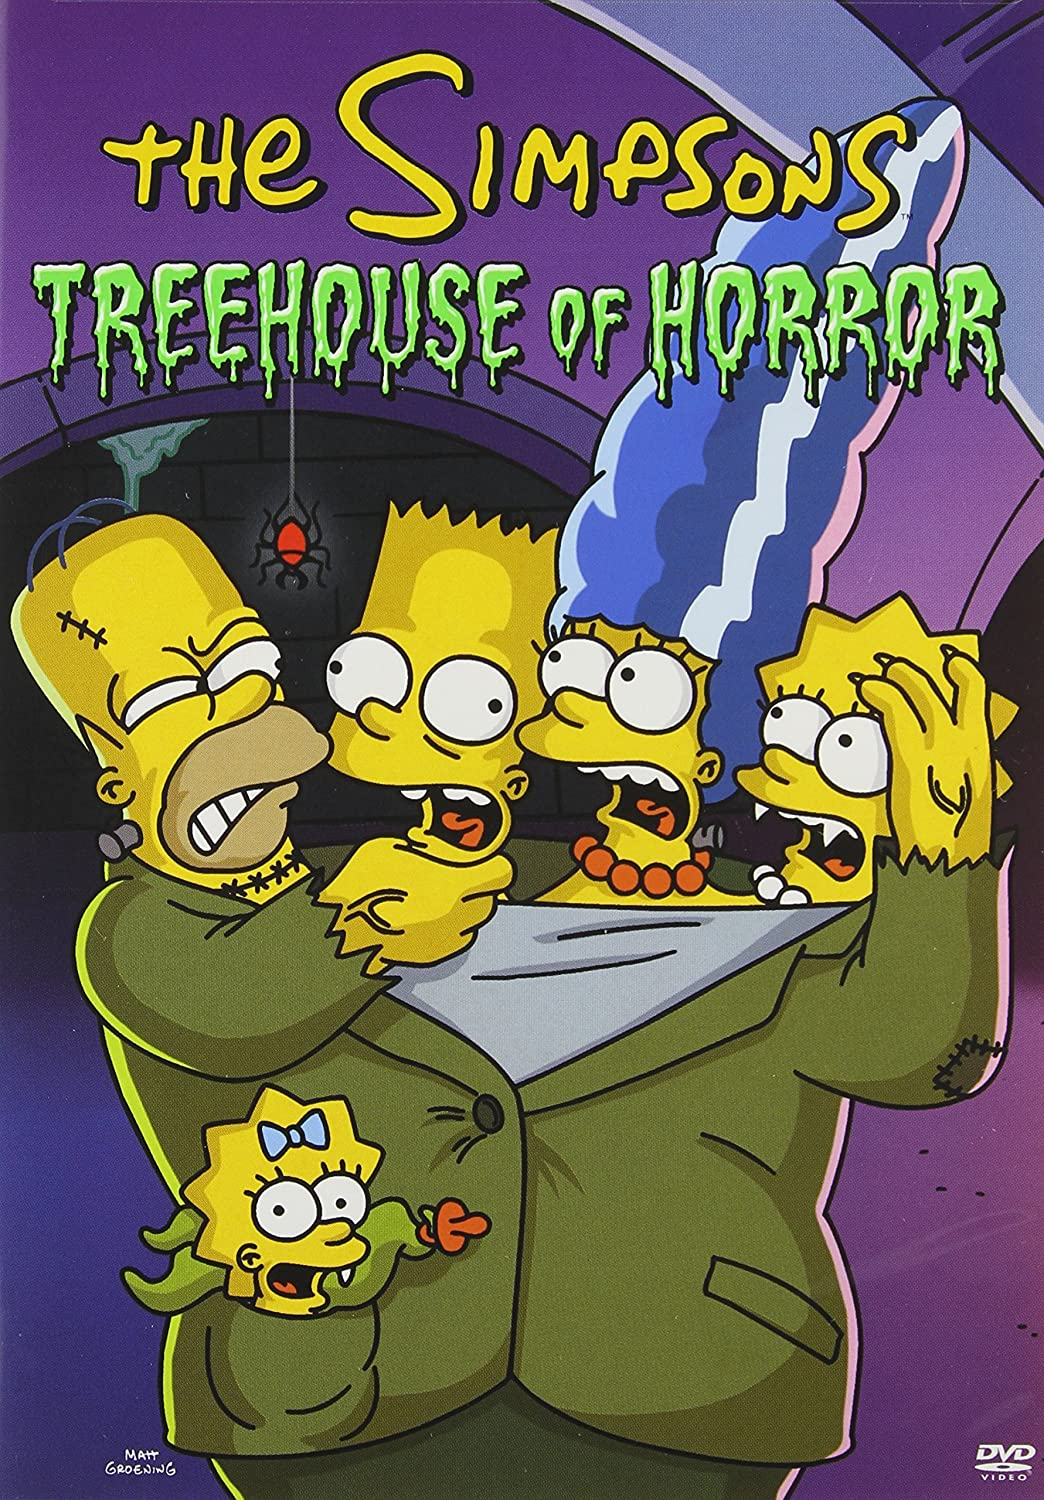 The Simpsons Treehouse Of Horror Affleck Neil Anderson Viii Bob Anderson Mikel B Archer Wesley Baeza Carlos Butterworth Kent Cashman Shaun Clements Iii Chris Dietter Susie Hall Klay Kirkland Mark